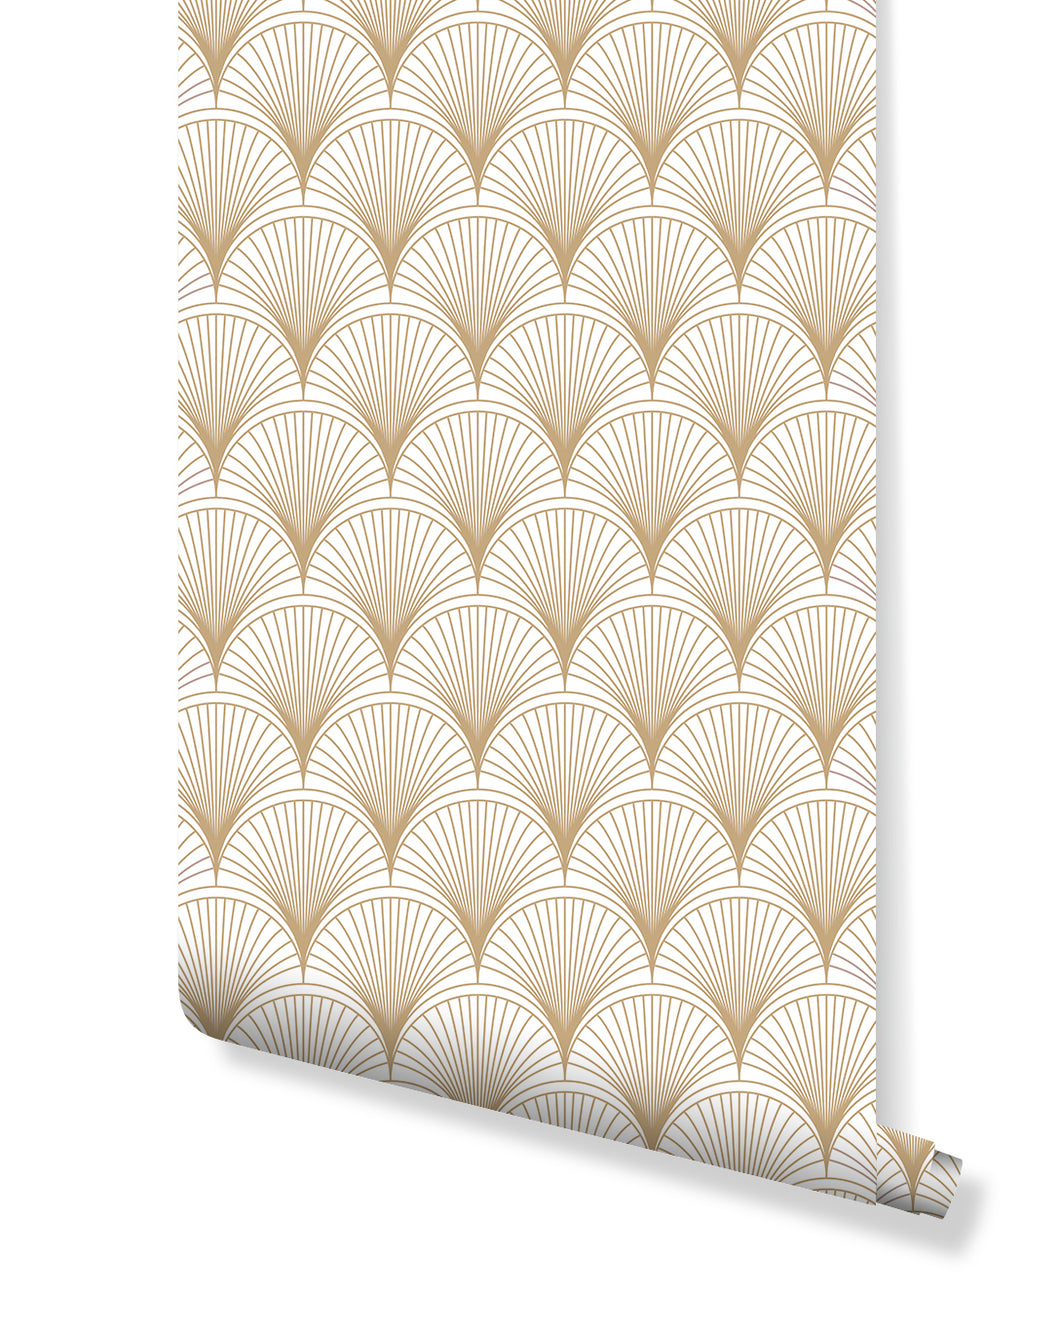 Temporary wallpaper art deco dark gold scalops geometric self adhesive removable wall paper with luxury design